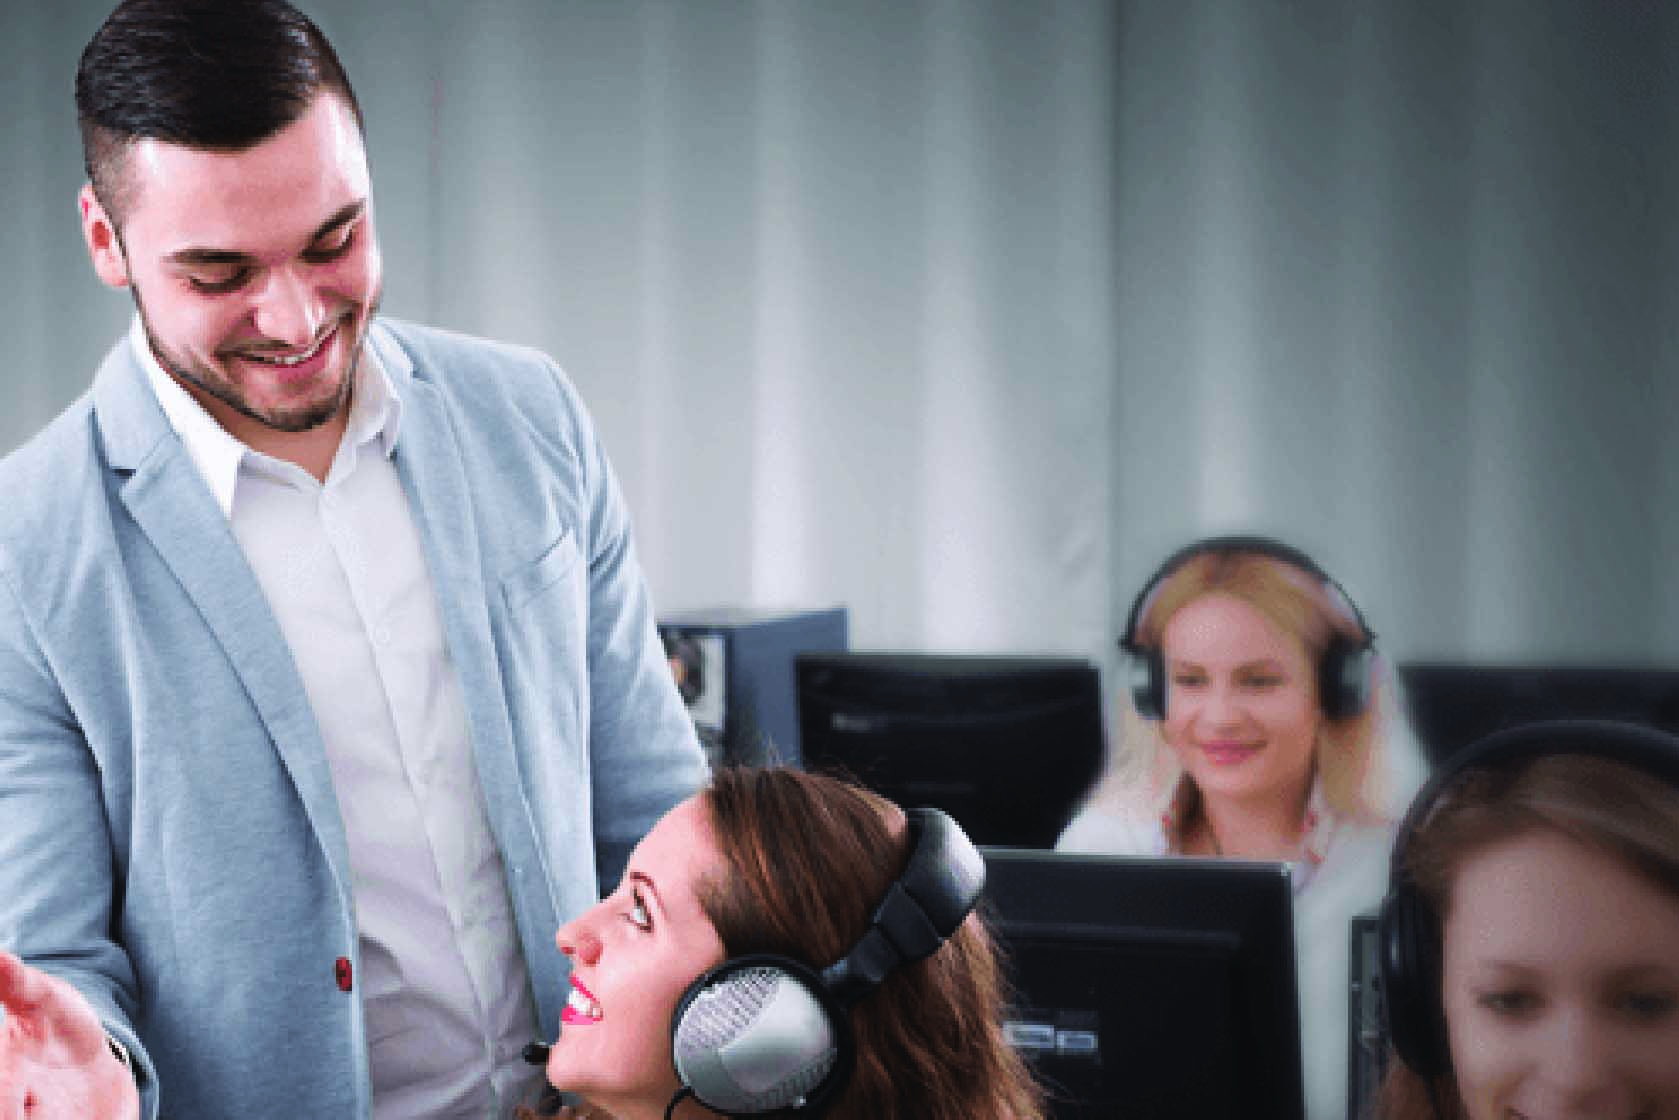 A guy managing in contact centre